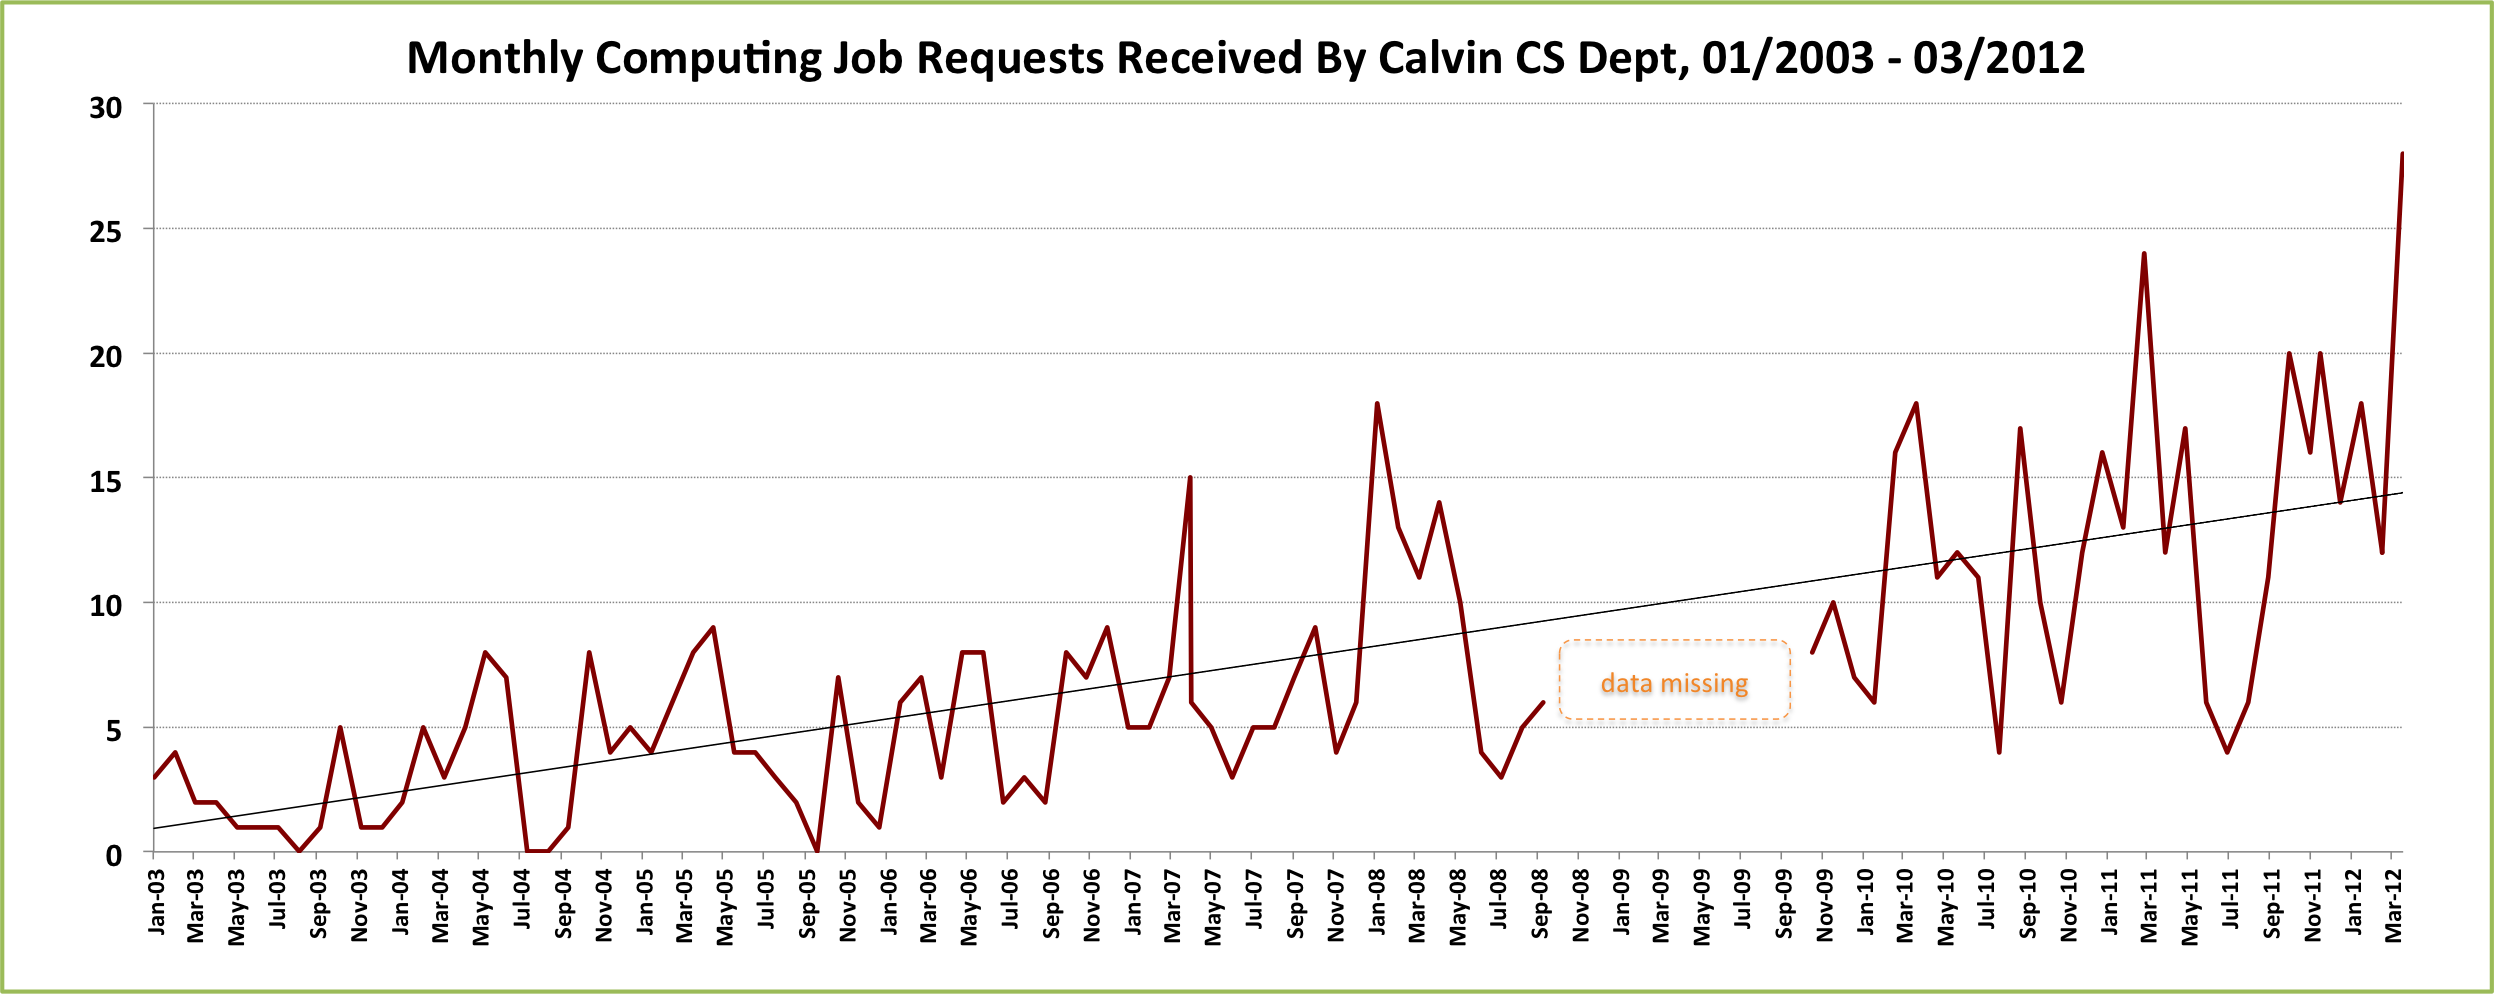 Calvin computer science students are in high demand